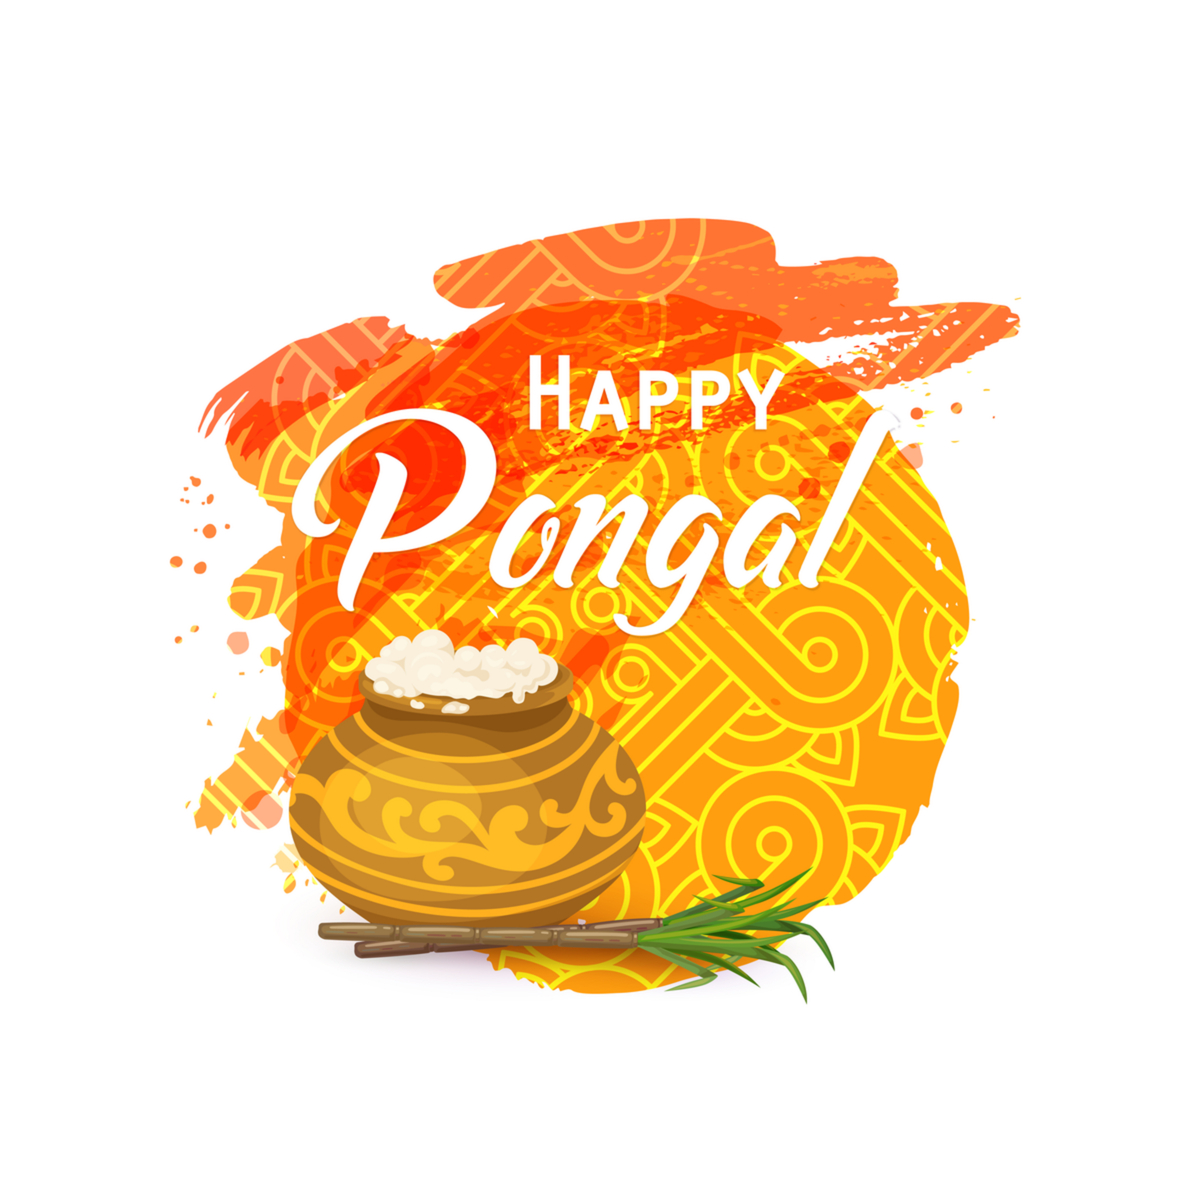 Thai Pongal In 2019 2020 When Where Why How Is